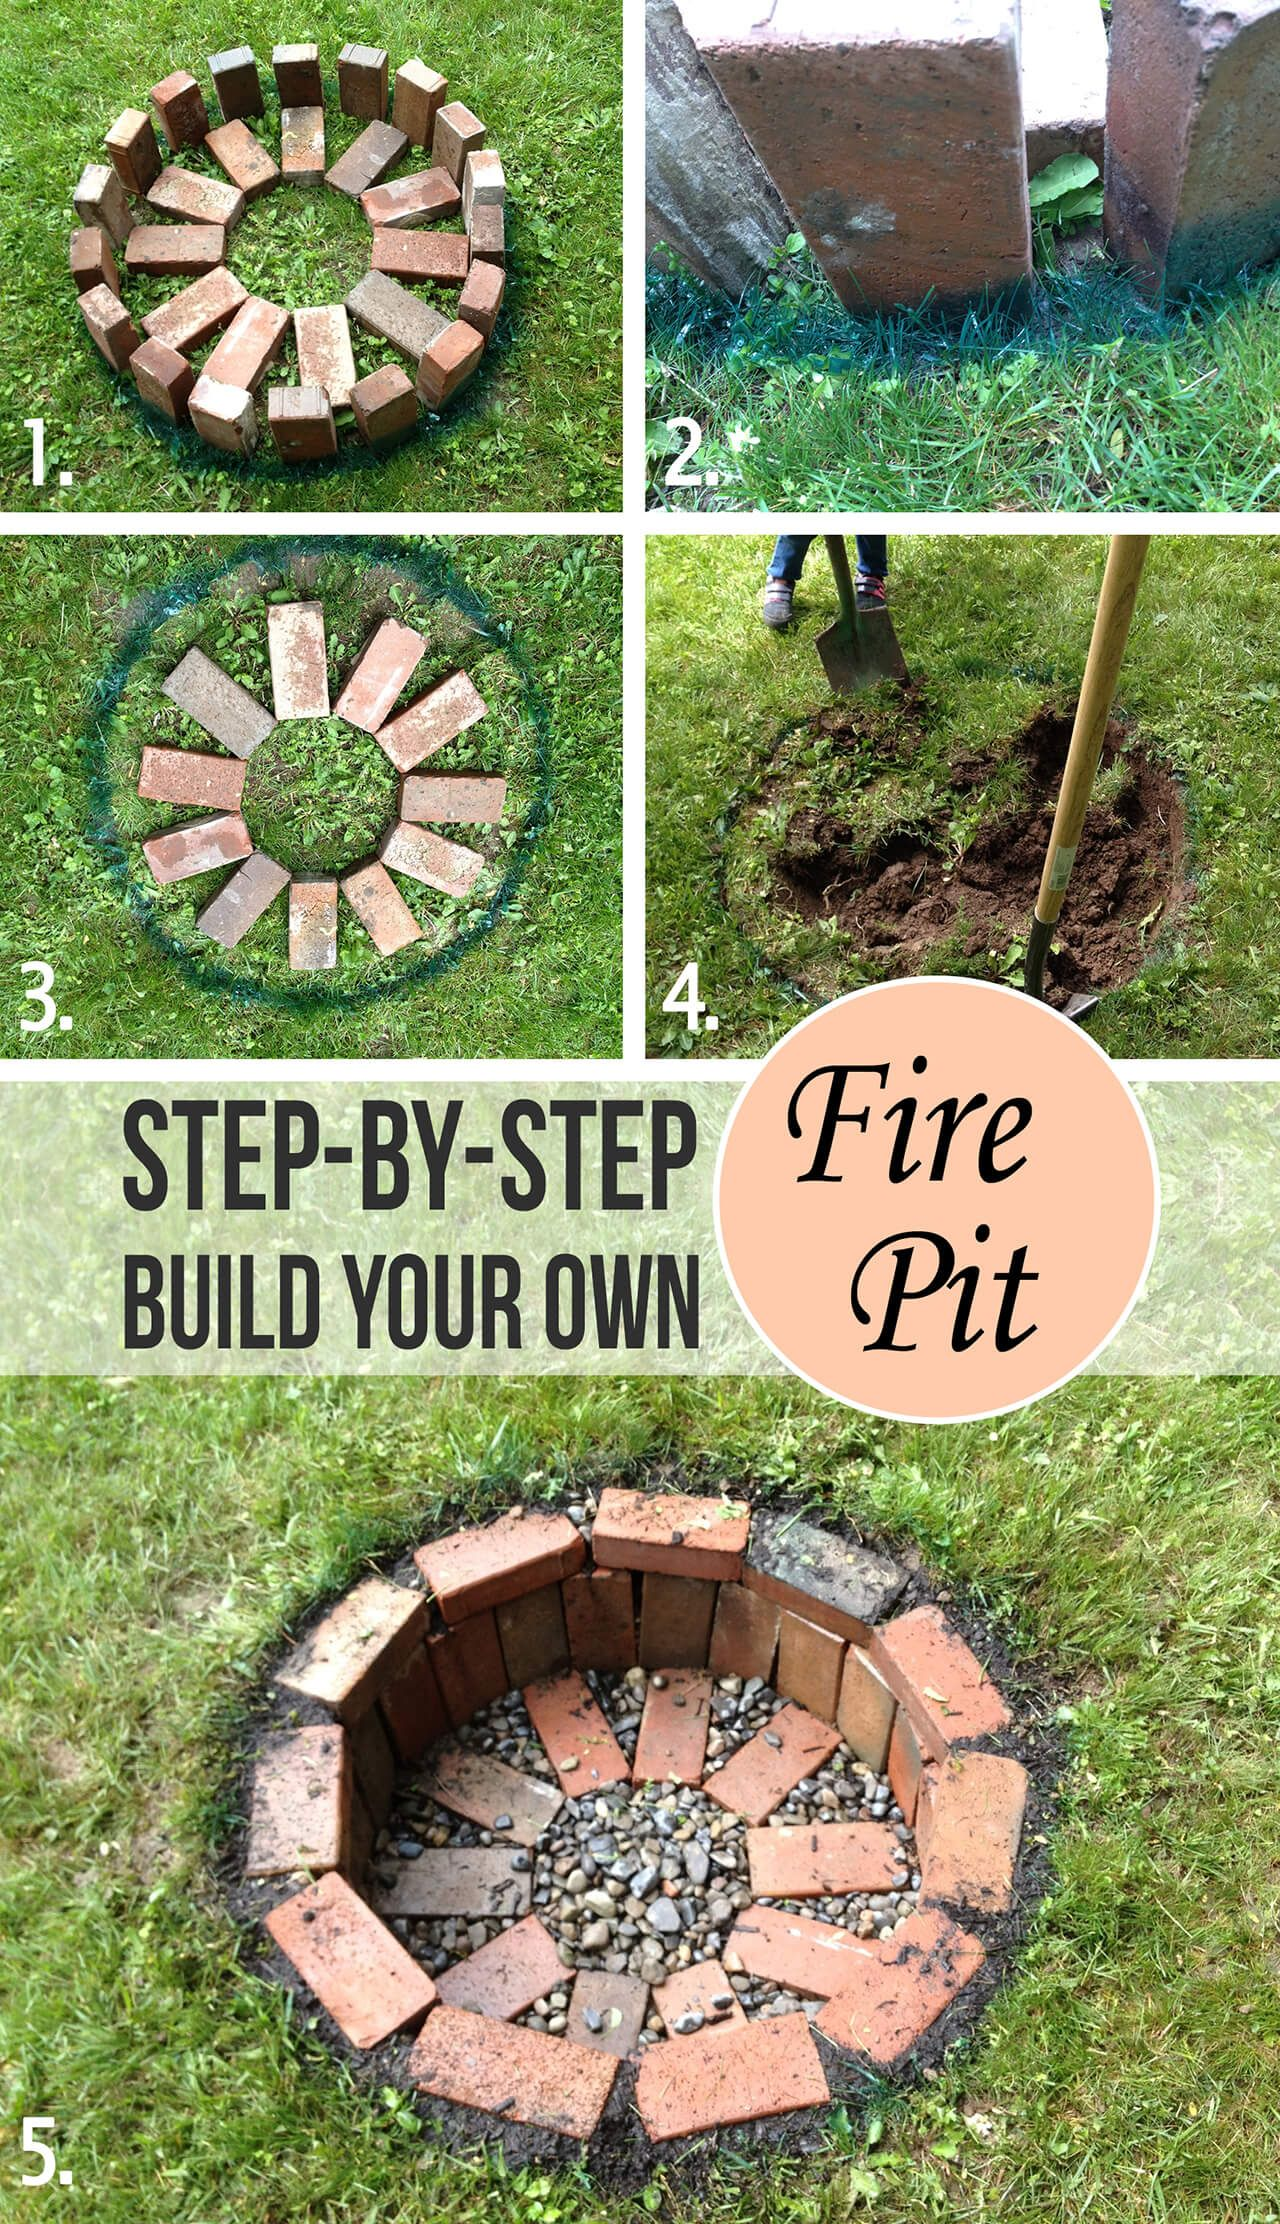 Brick Meubles Jardin Diy Round Brick Firepit Tutorial Cool Idea Fogones De